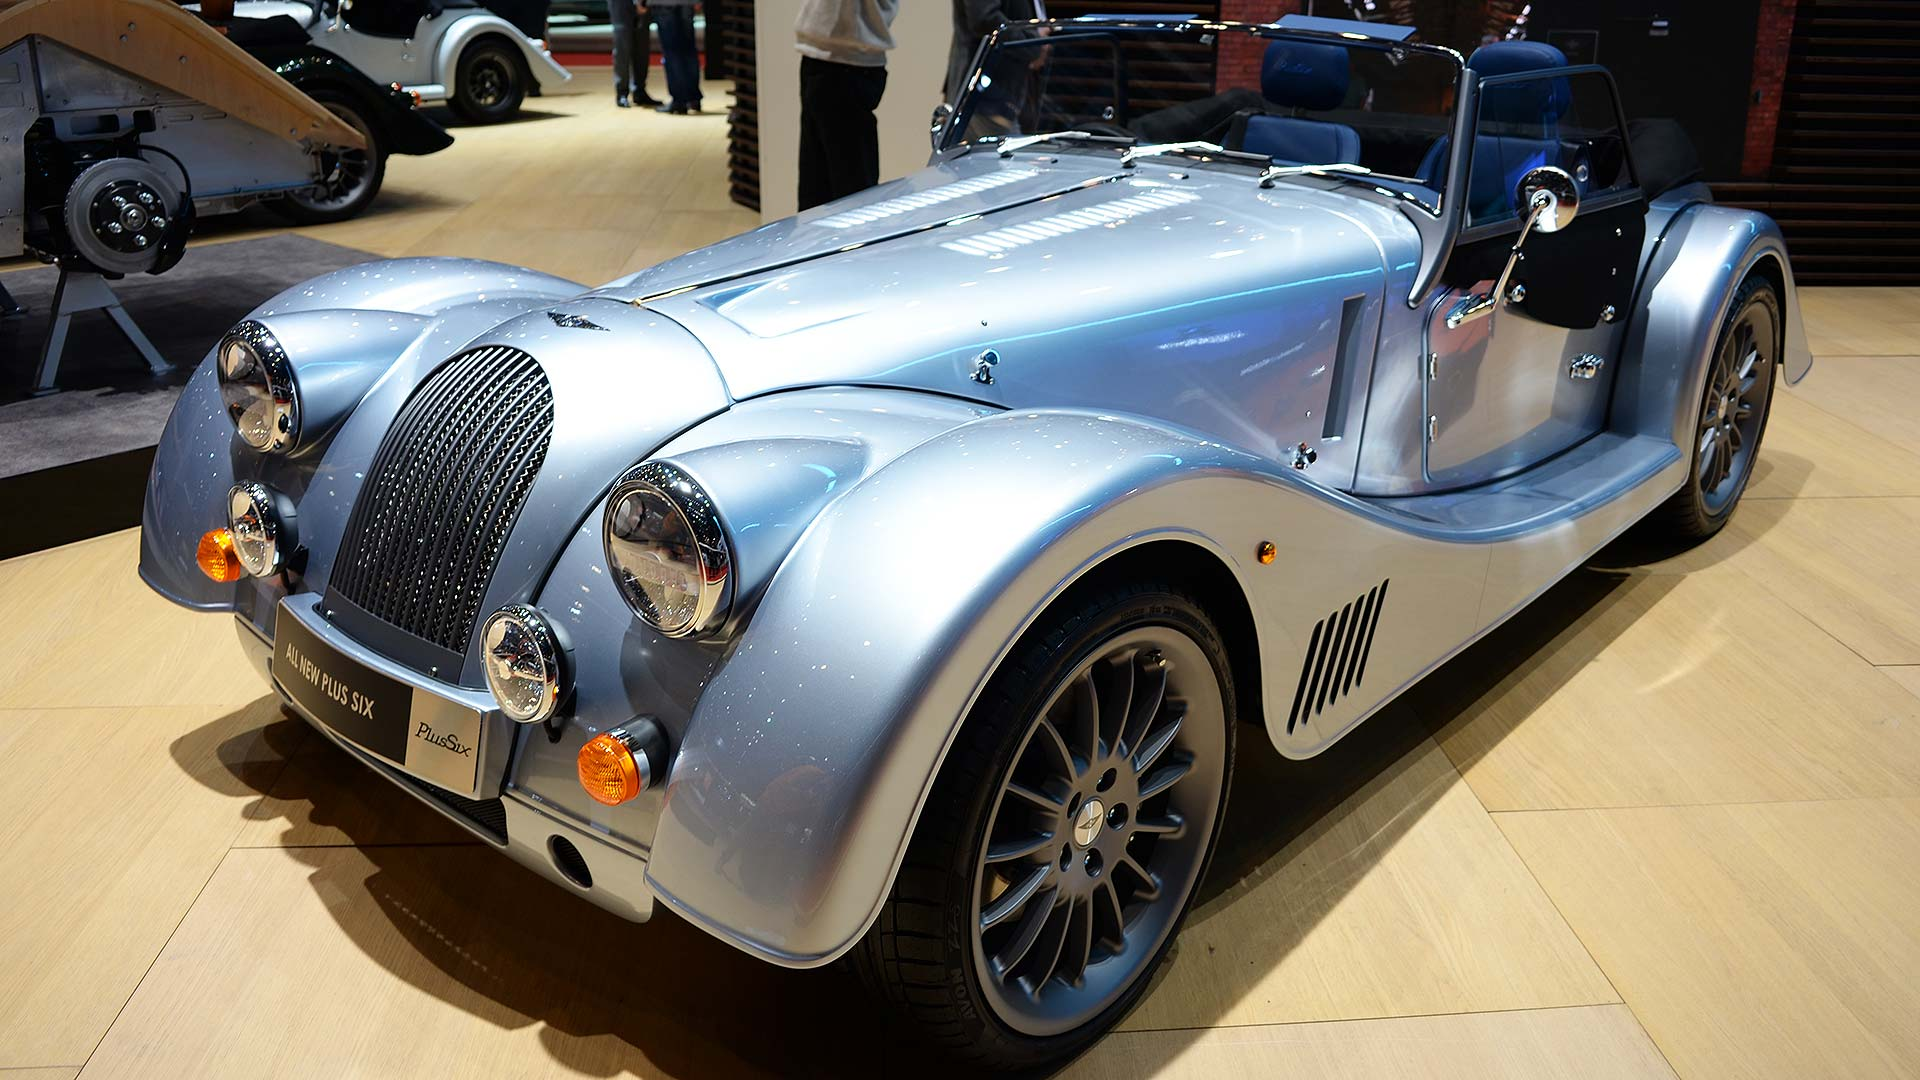 All-new Morgan Plus Six takes top spot from departed Plus 8